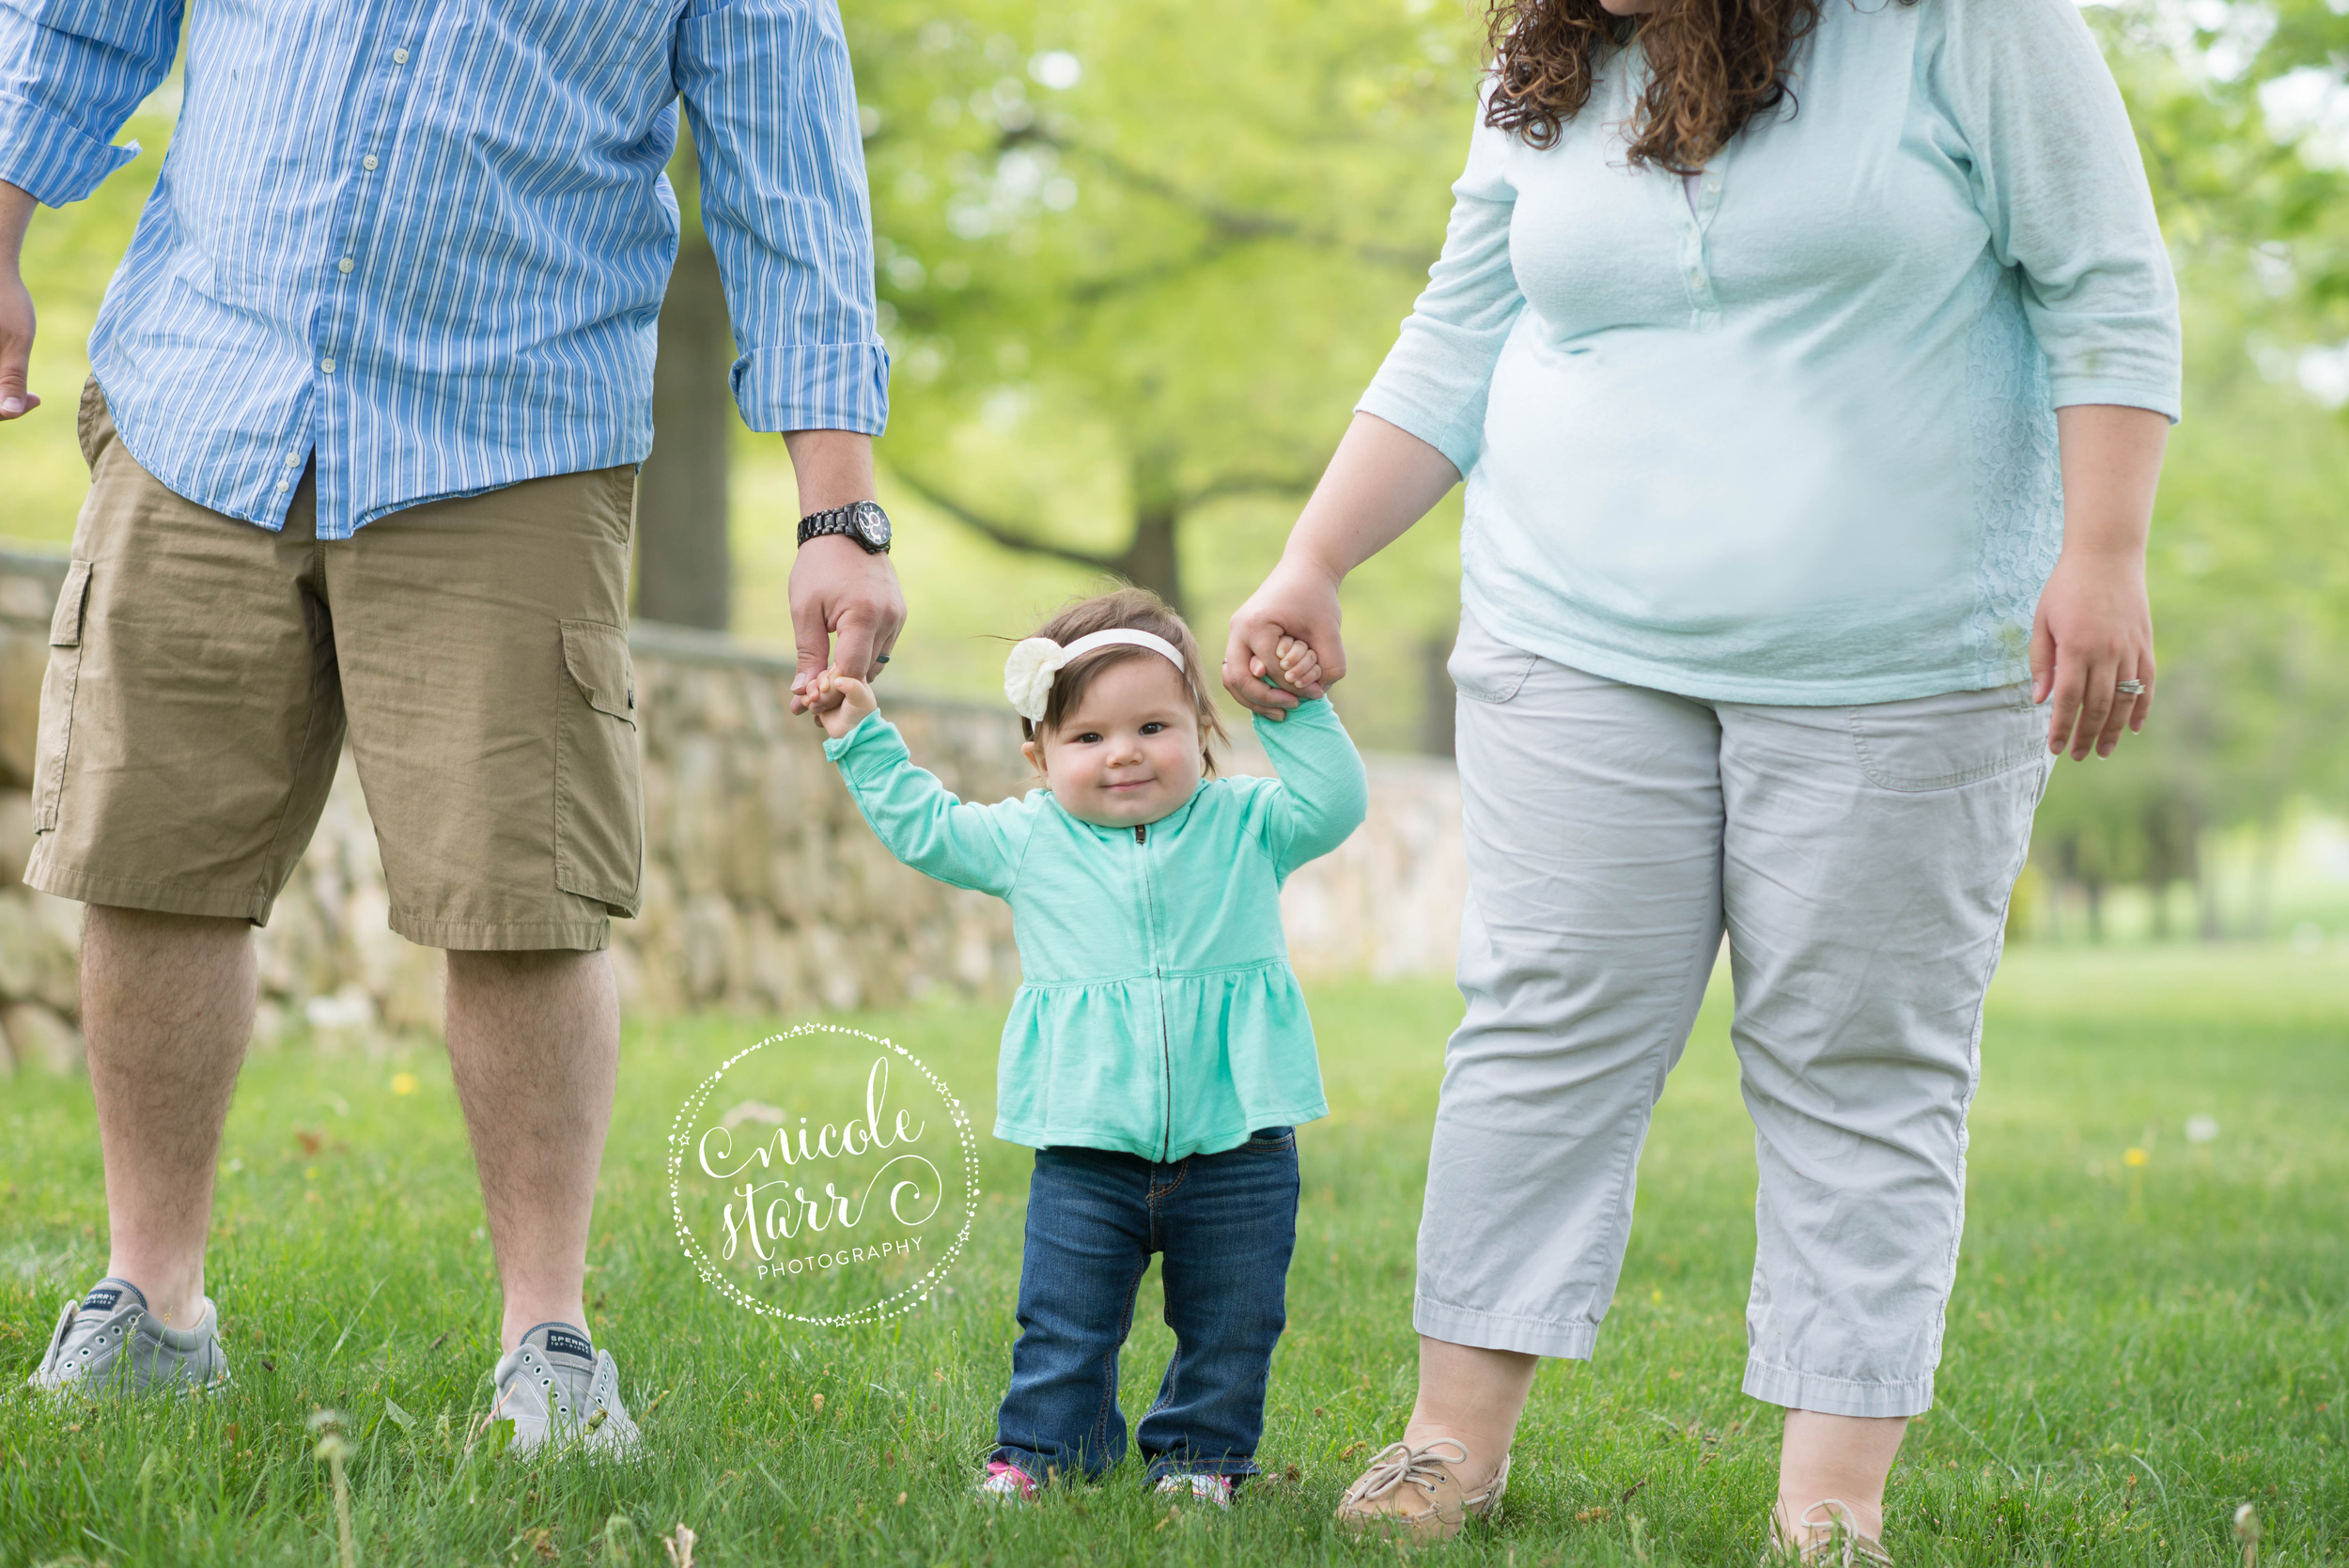 baby taking first steps in family photo with mom and dad